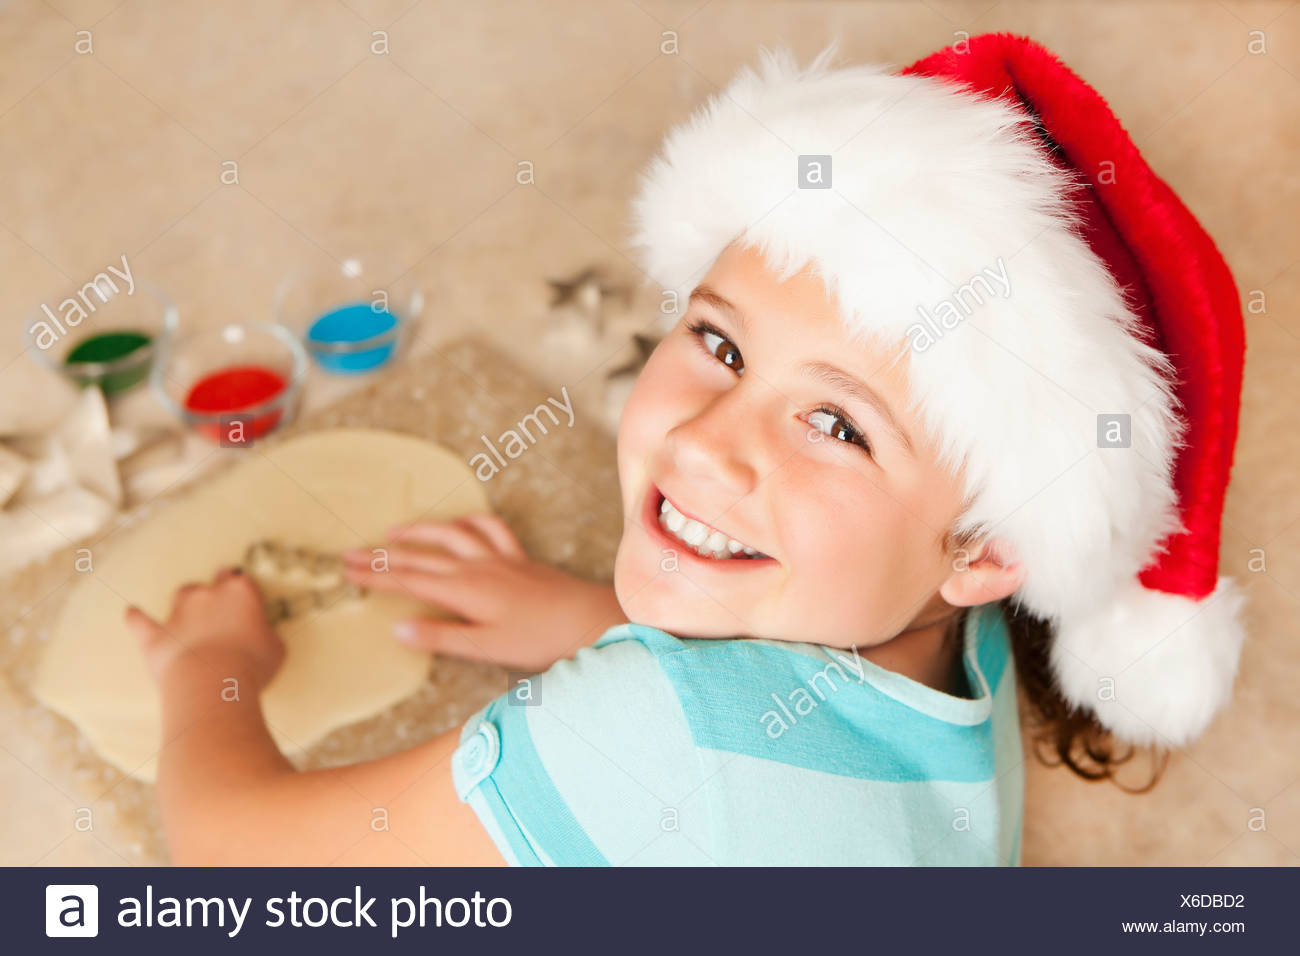 USA, California, Lawndale, Portrait of girl (10-11) wearing santa hat using pastry cutter - Stock Image